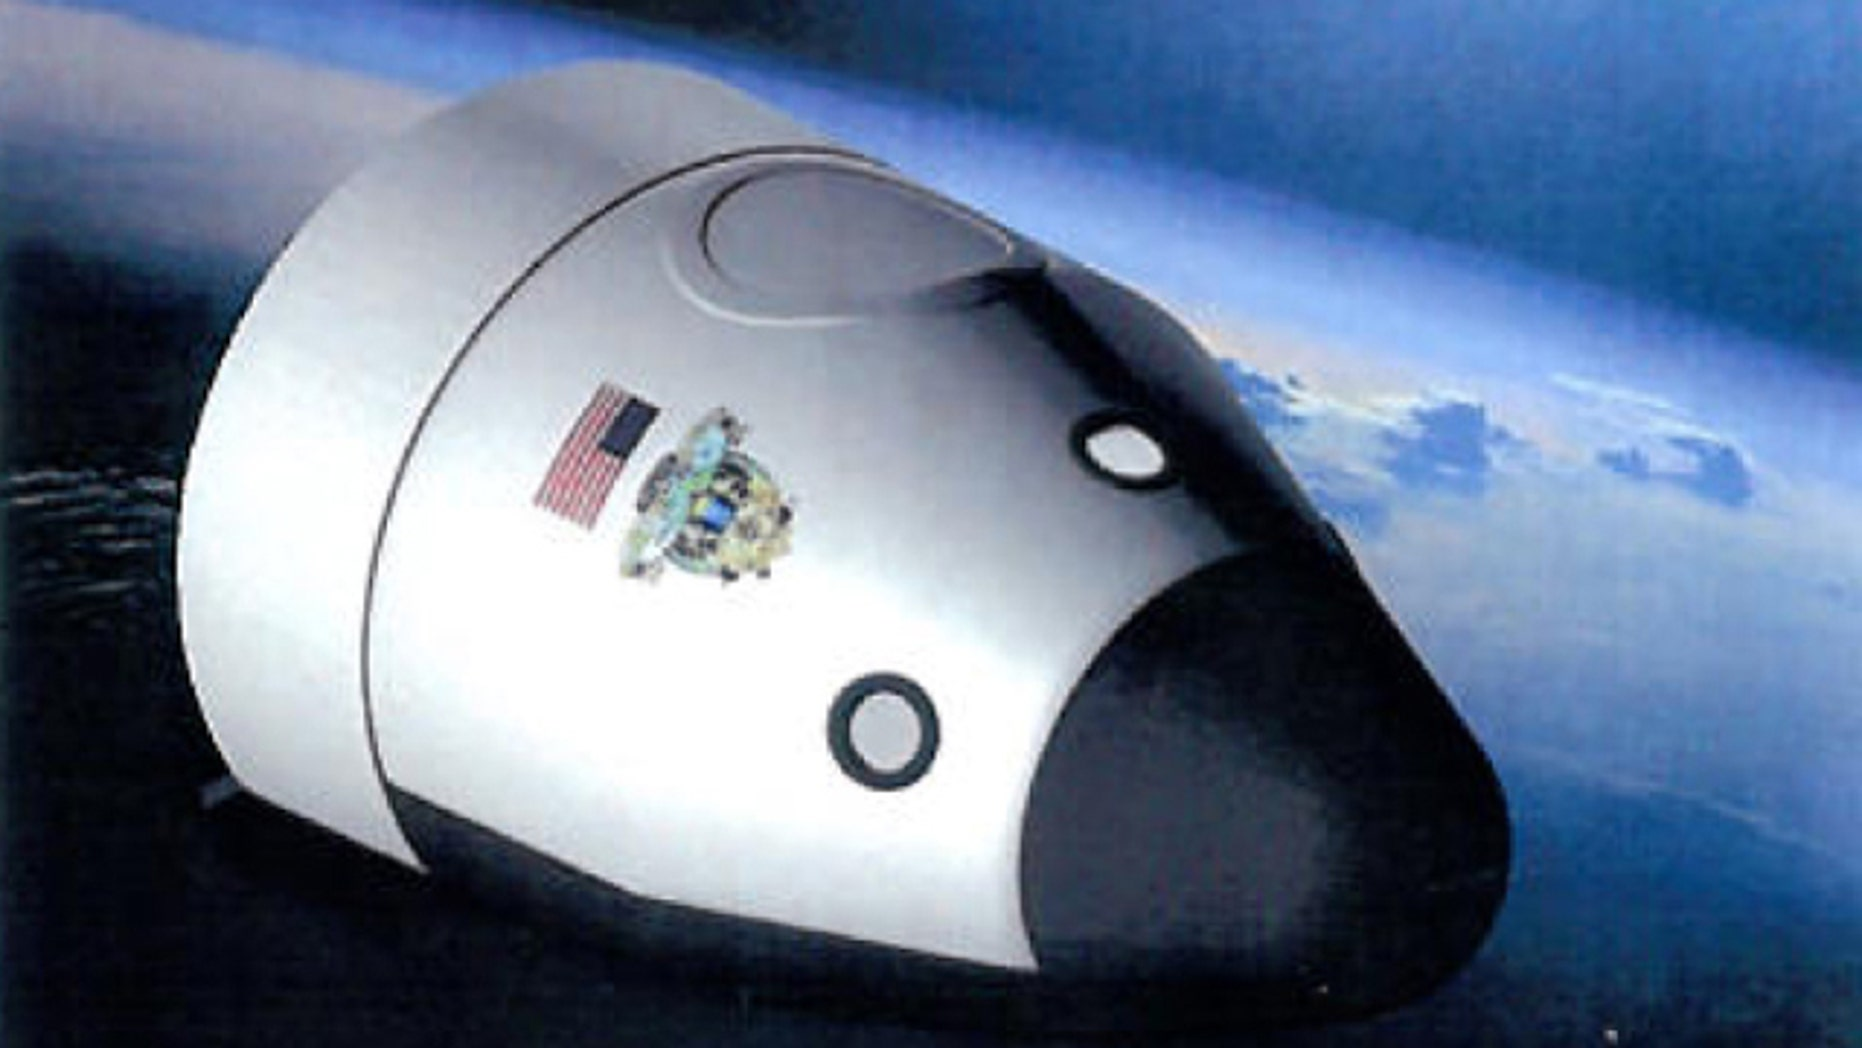 An artist's illustration of the orbital crew-carrying spaceship planned by the private company Blue Origin.